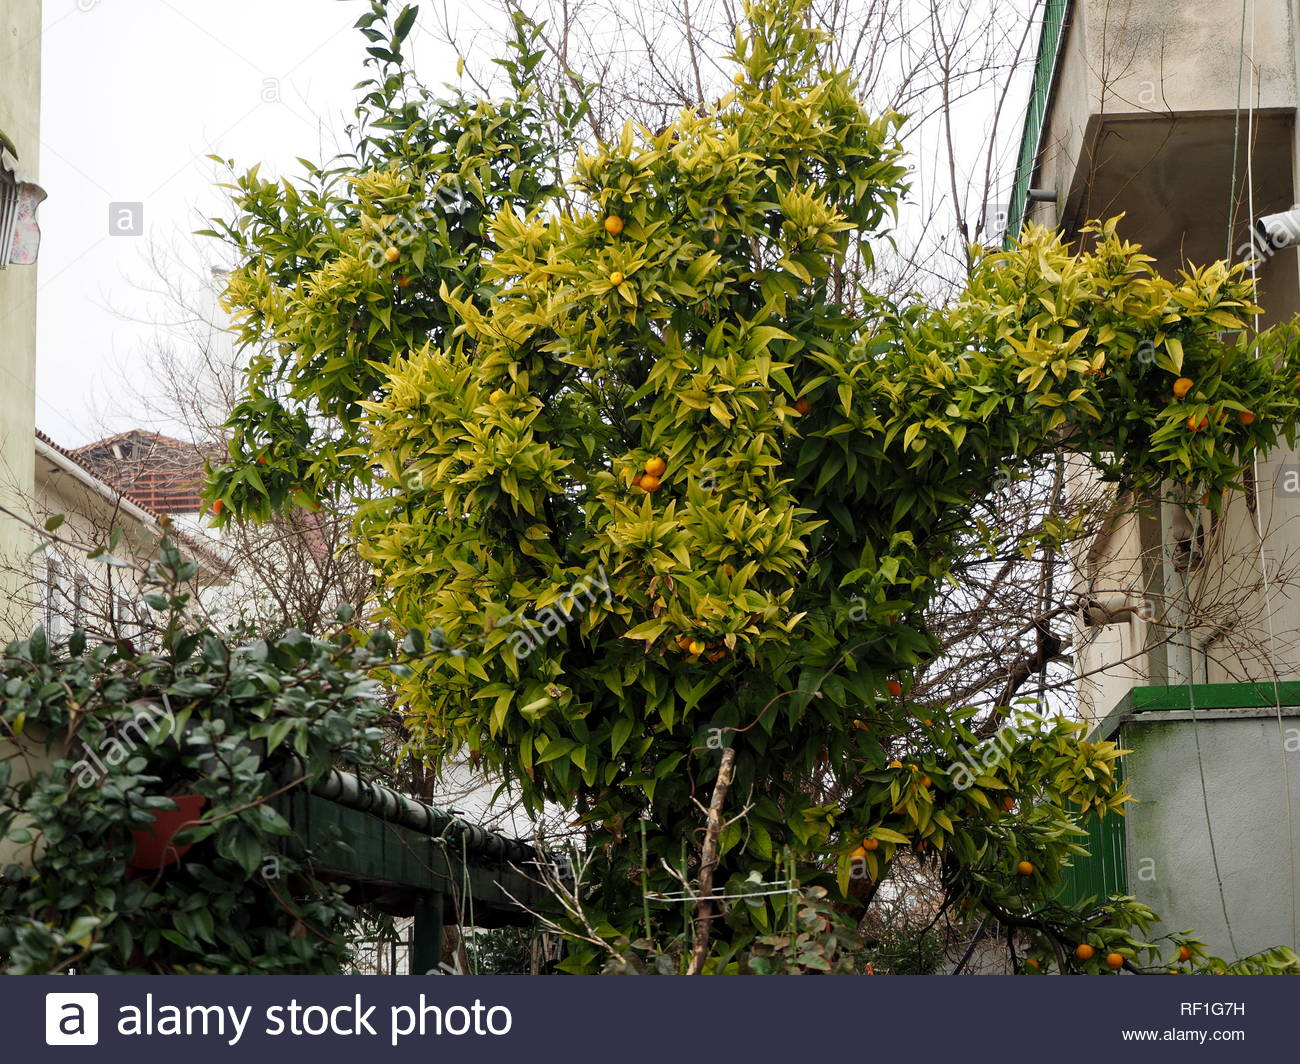 Mandarin orange tree - Stock Image